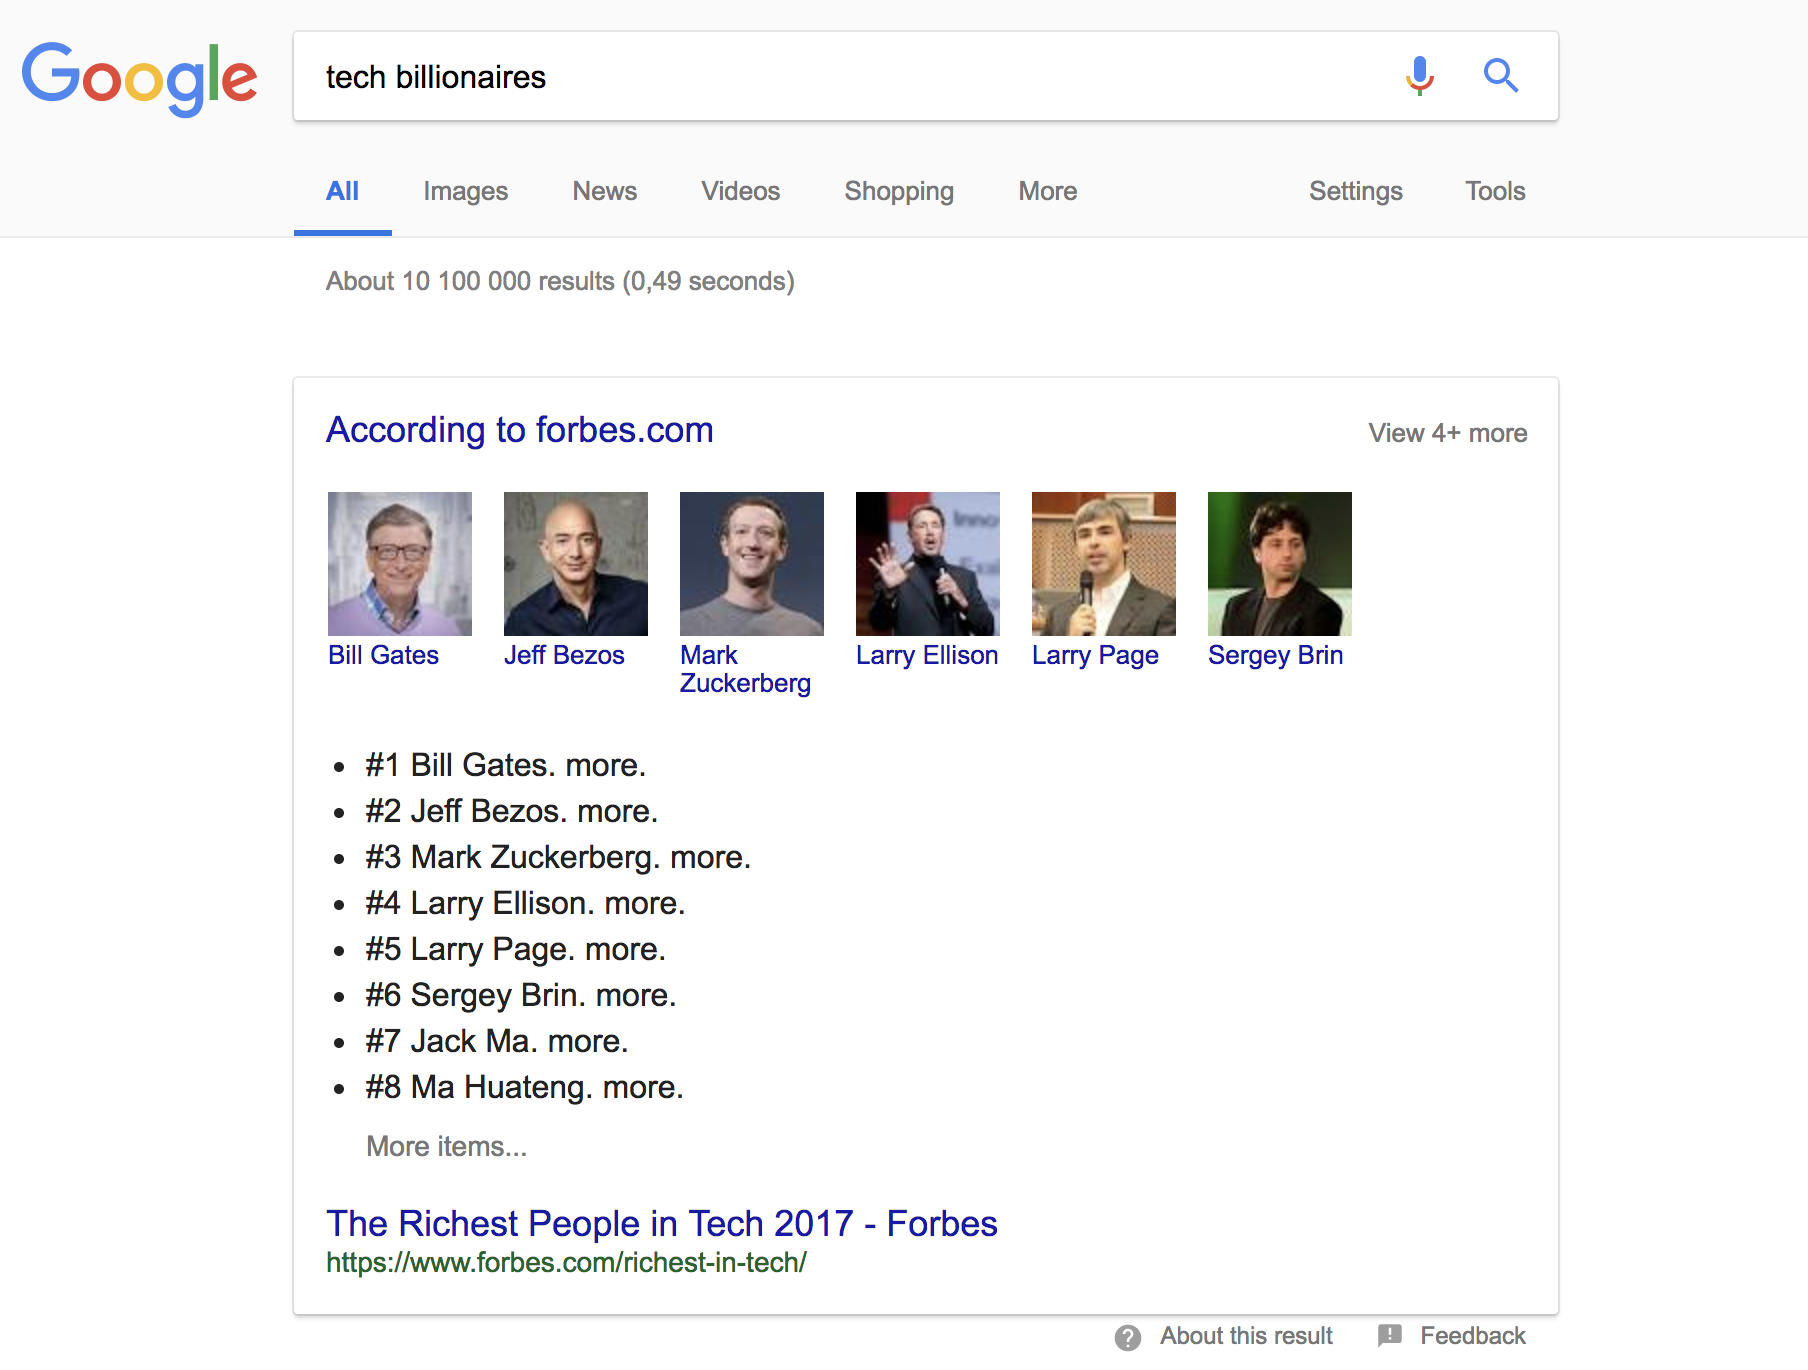 tech-billionaires-Google-related-search